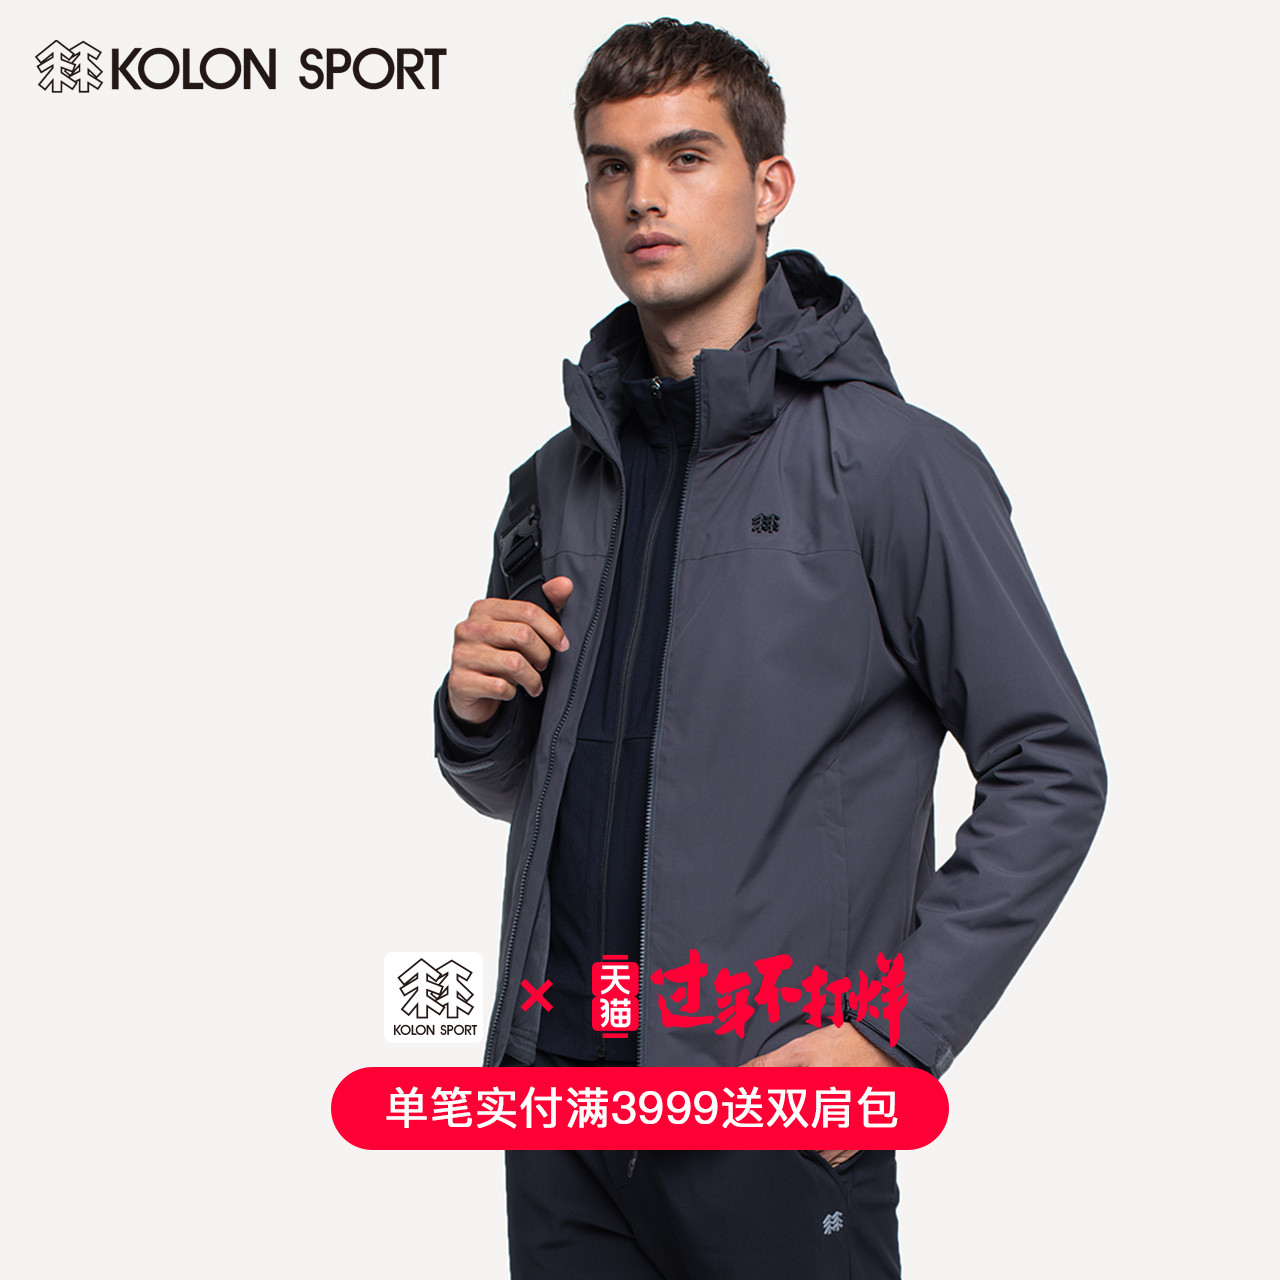 KOLONSPORT can be long Storm Jacket Men's autumn and winter three-in-one fleece jacket short warm jacket